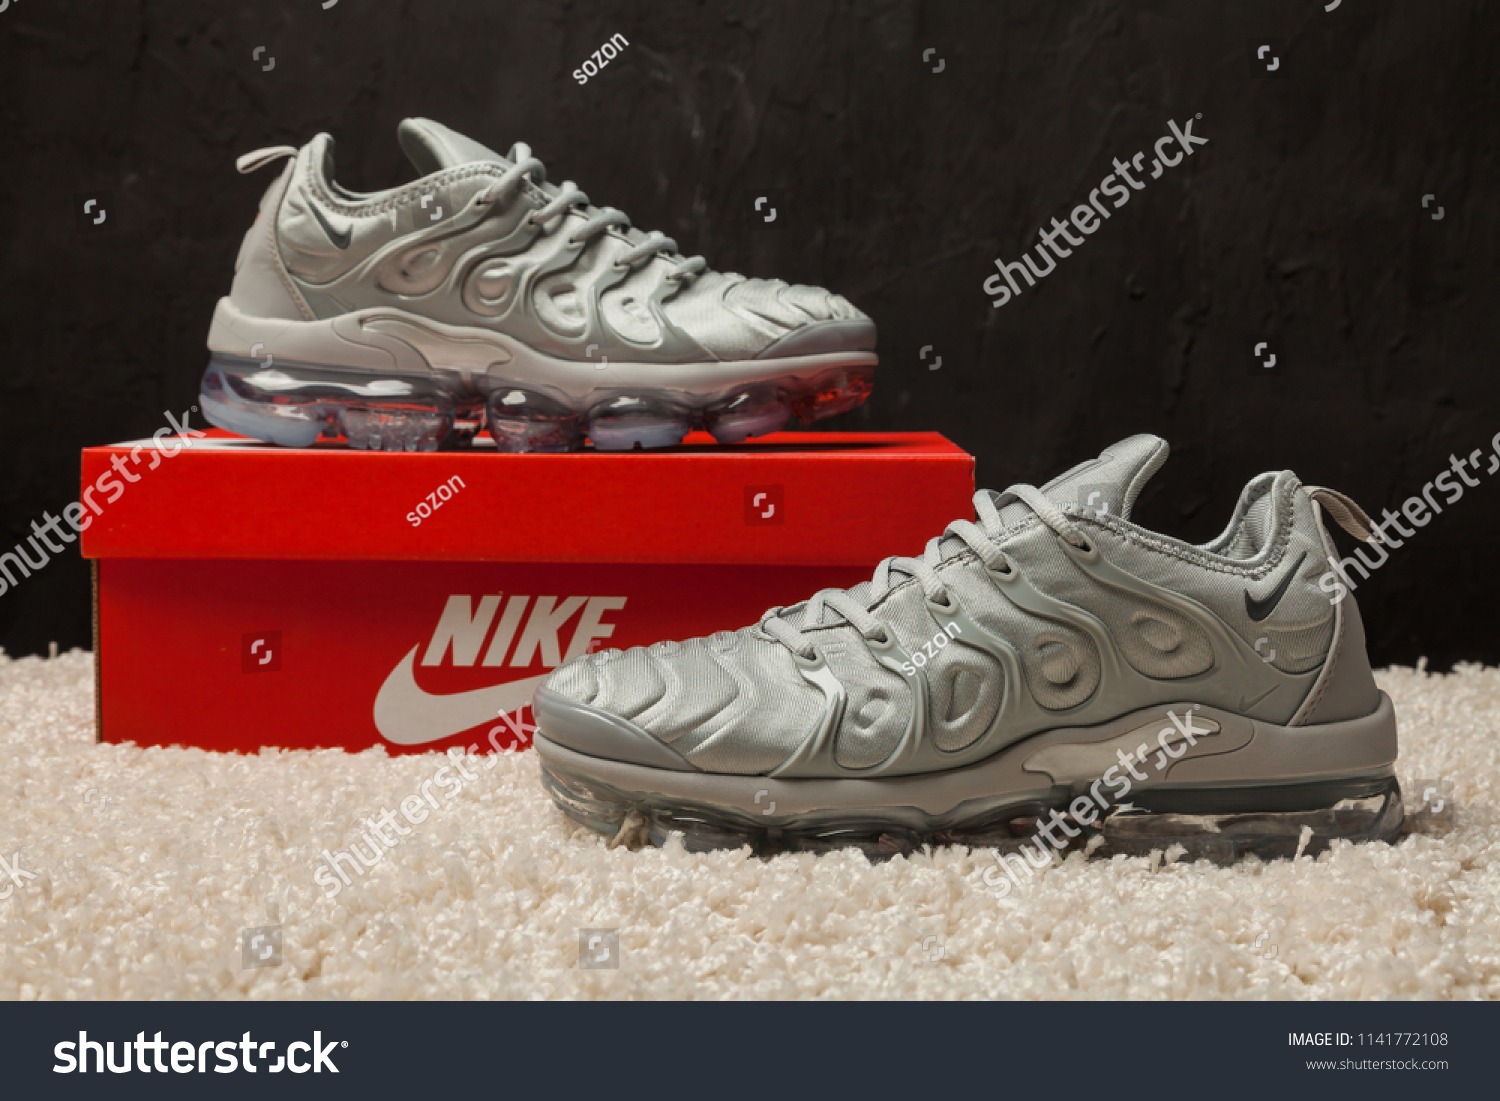 New Beautiful Colorful Nice Nike Air Stock Photo (Edit Now ... 8e6bab4c66c3